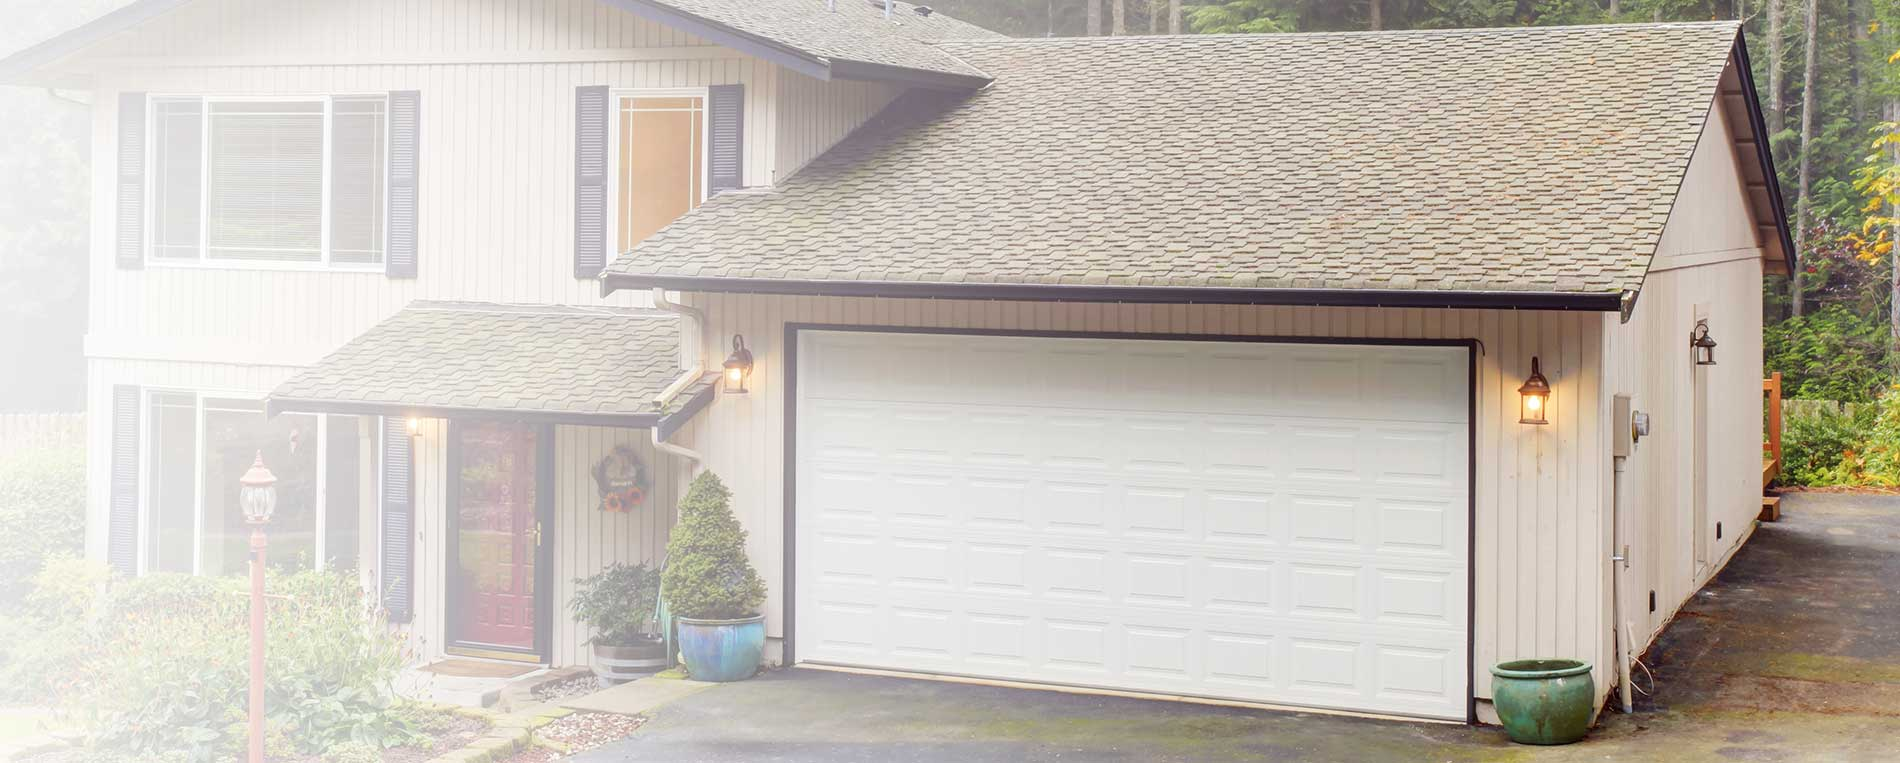 Garage Door Repair Danbury CT  Top Quality Repairs